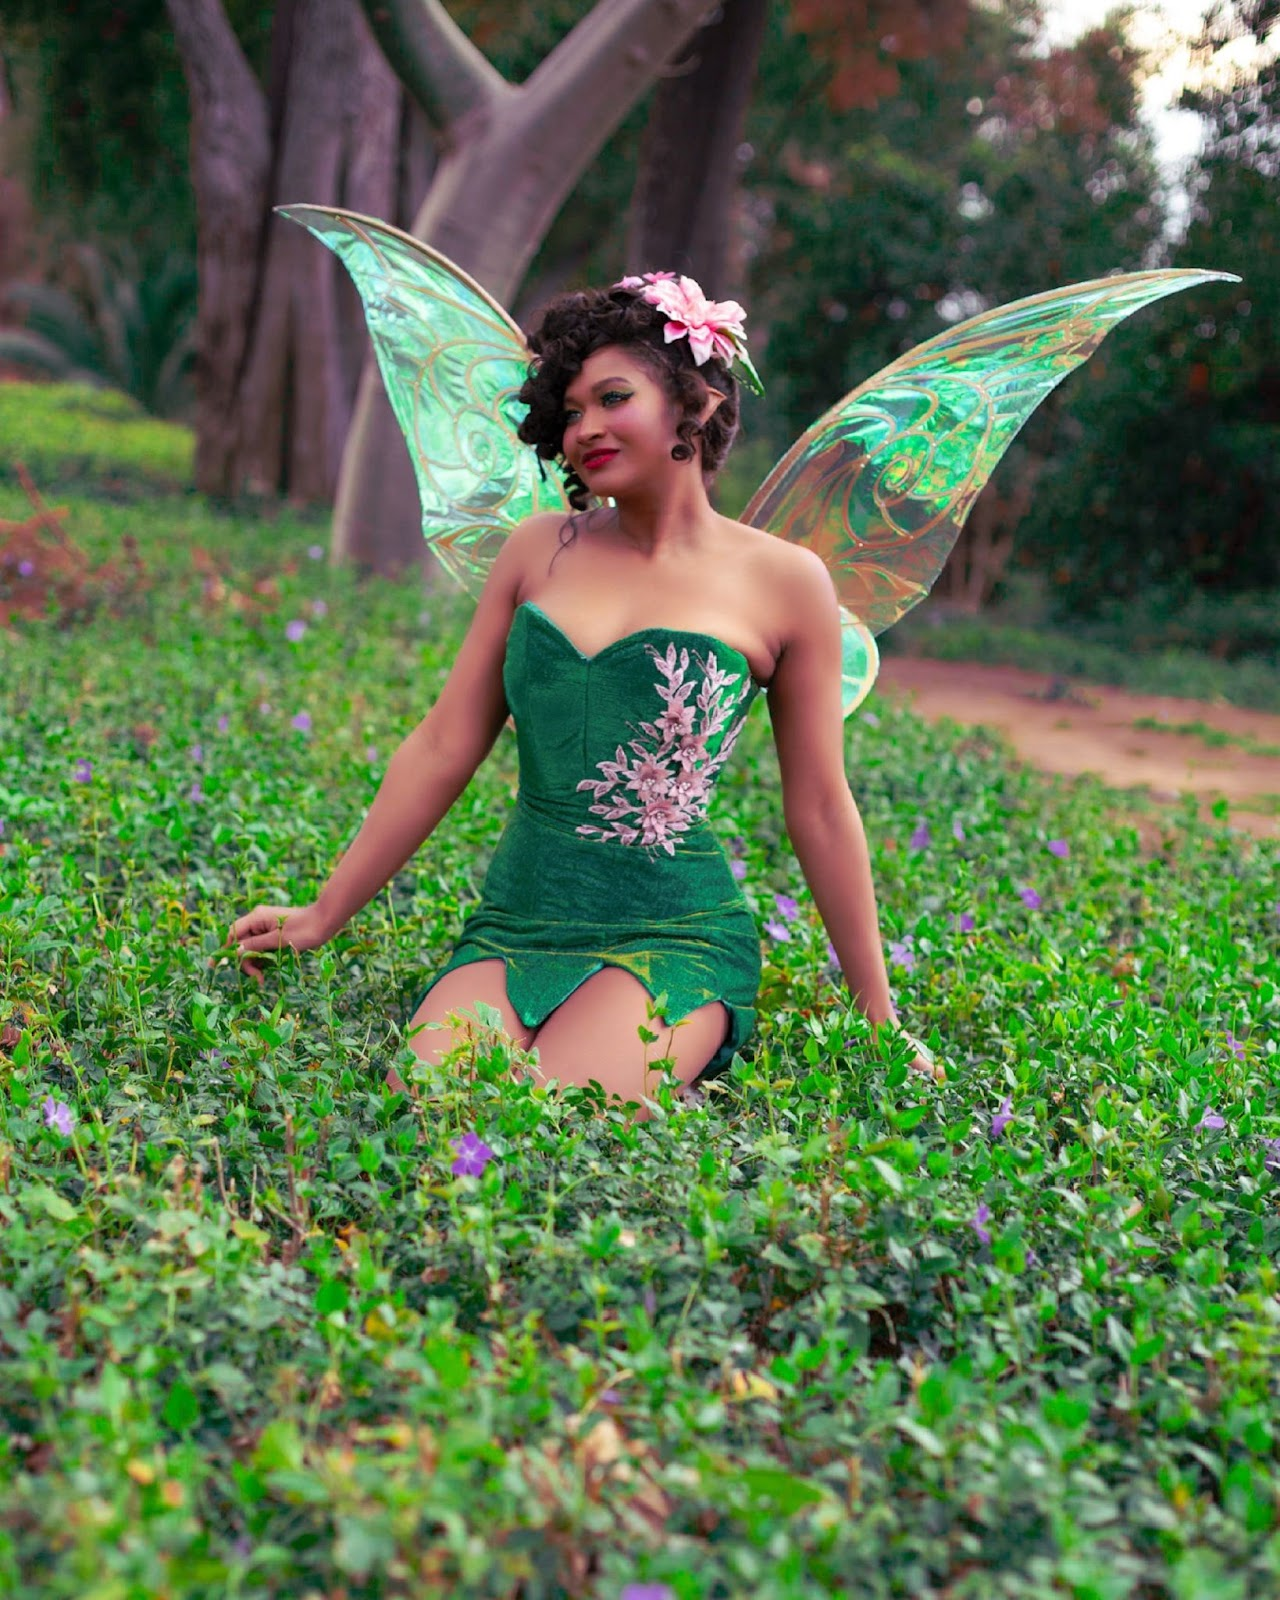 tinker bell cosplay from peter pan and tinker bell. green dress, fluorescent wings, lily pad head dress.